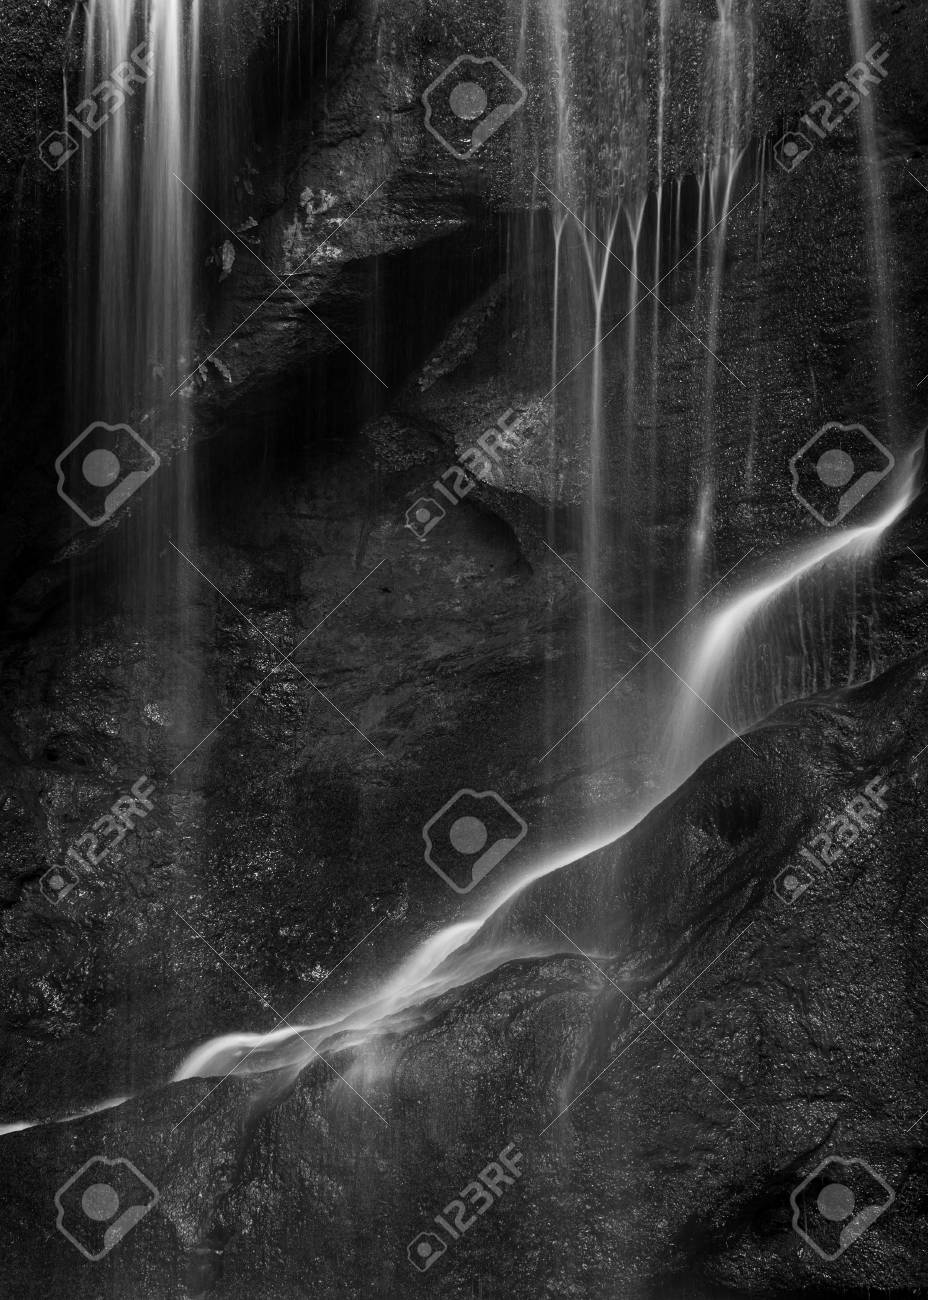 Stunning peaceful black and white long exposure waterfall detail